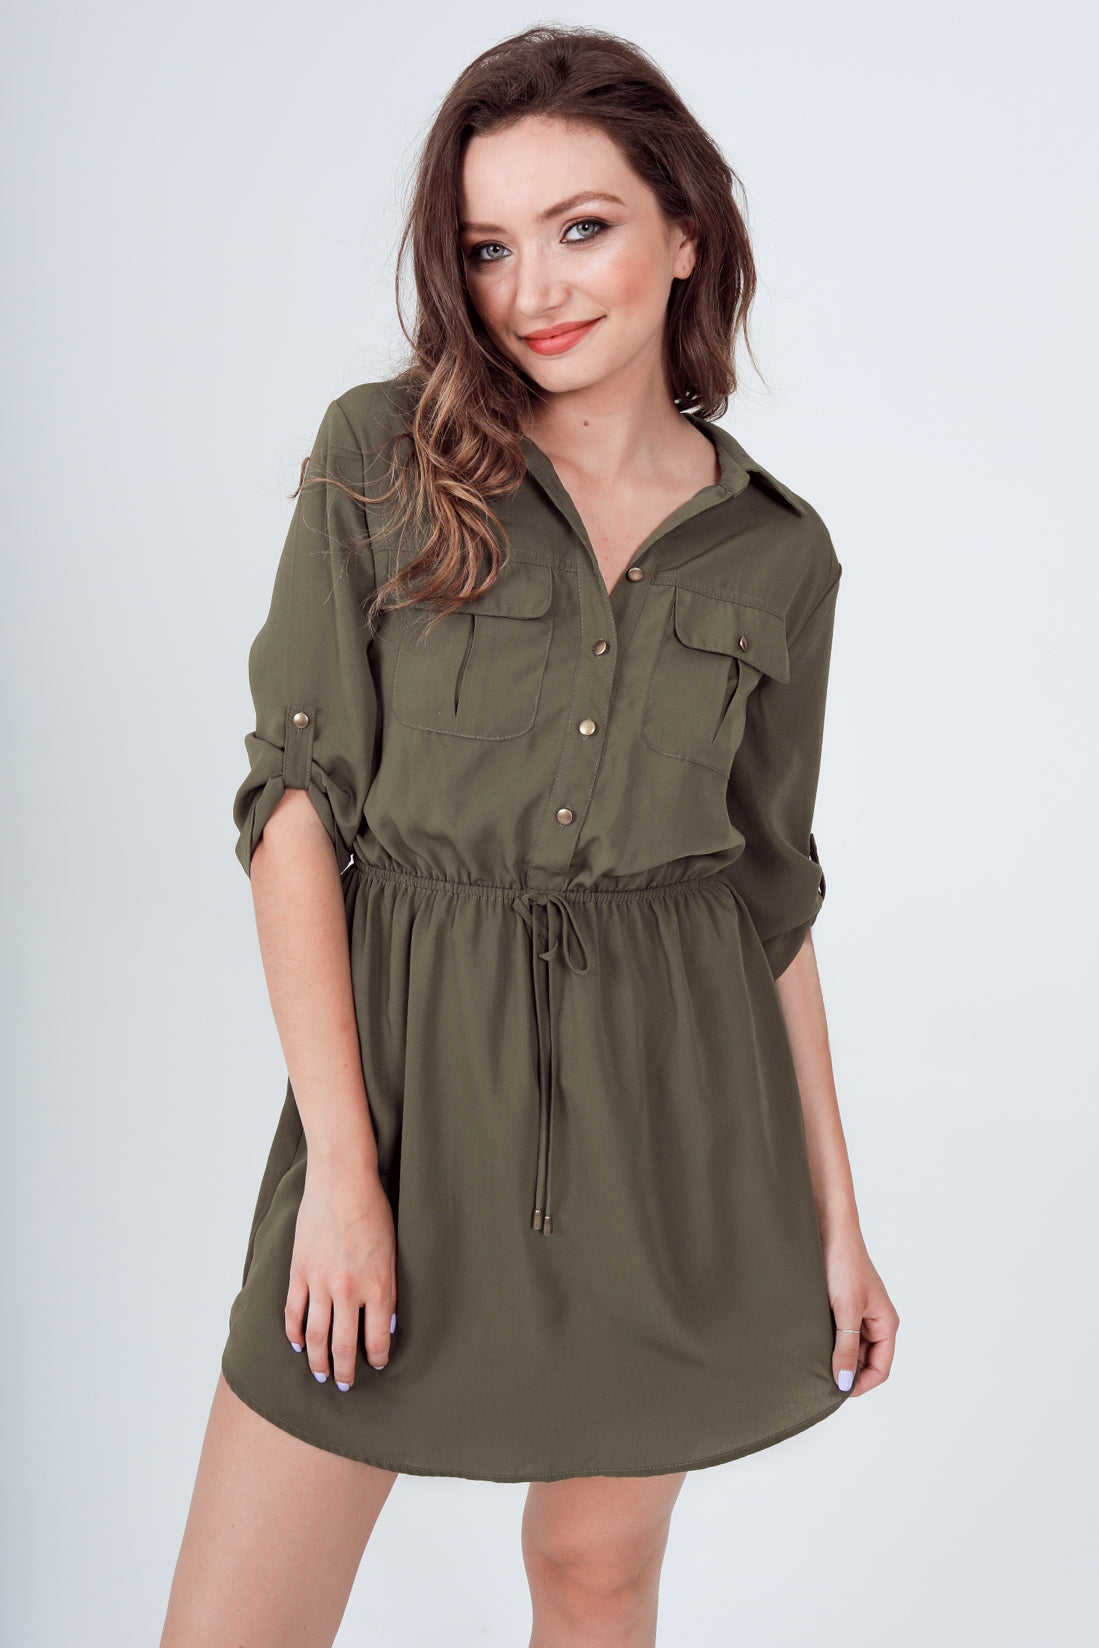 Roll-Up 3/4 Sleeve Drawstring Waist Utility Shirt Dress with Front Pockets in Olive